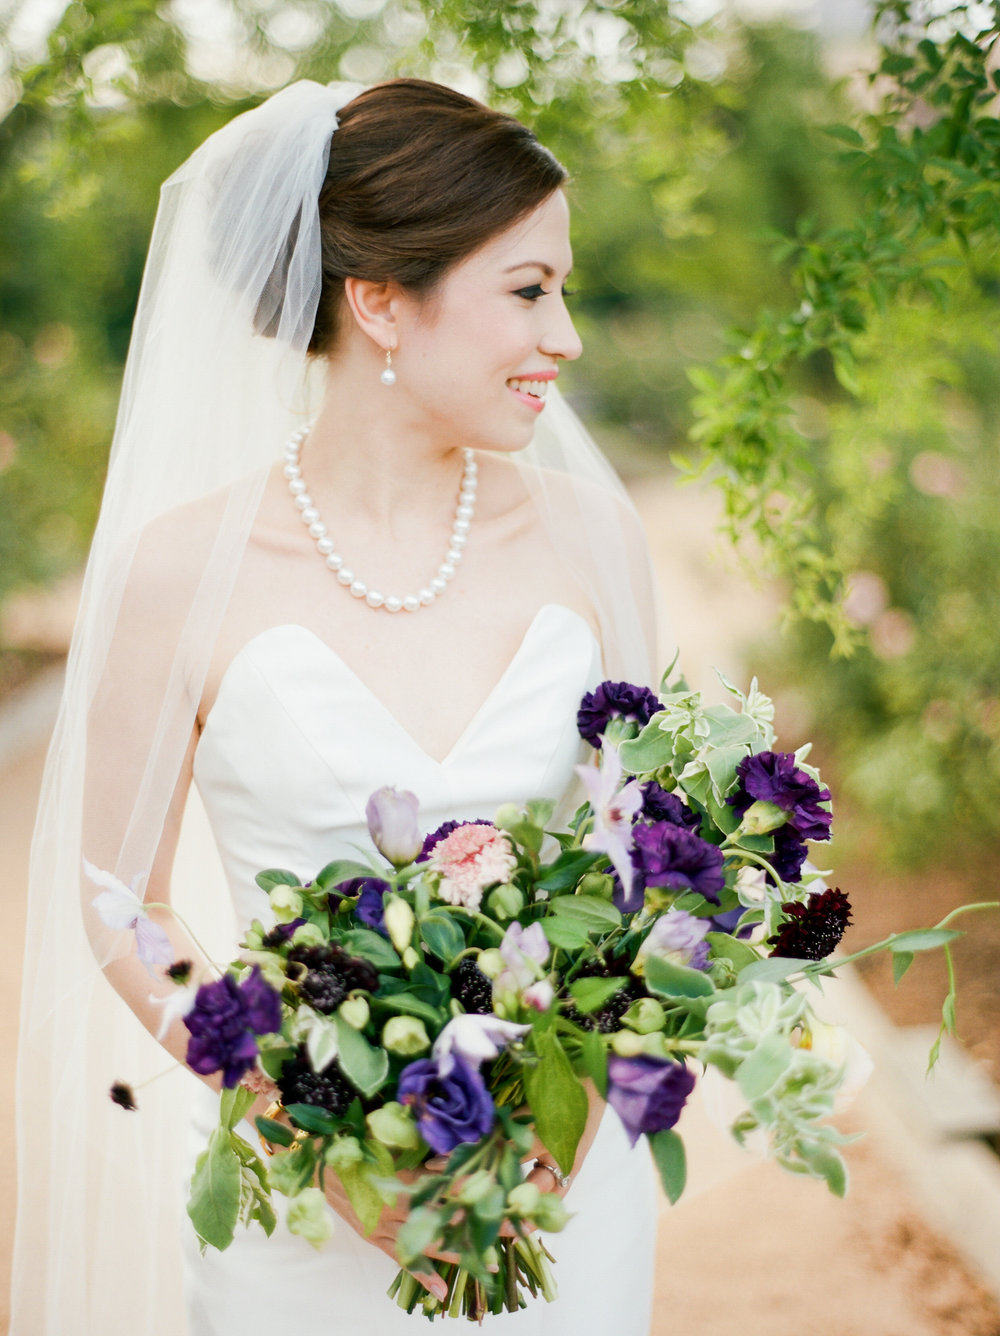 mcgovern-centennial-gardens-wedding-houston-wedding-photographer-bridals-film-austin-wedding-photographer-7.jpg